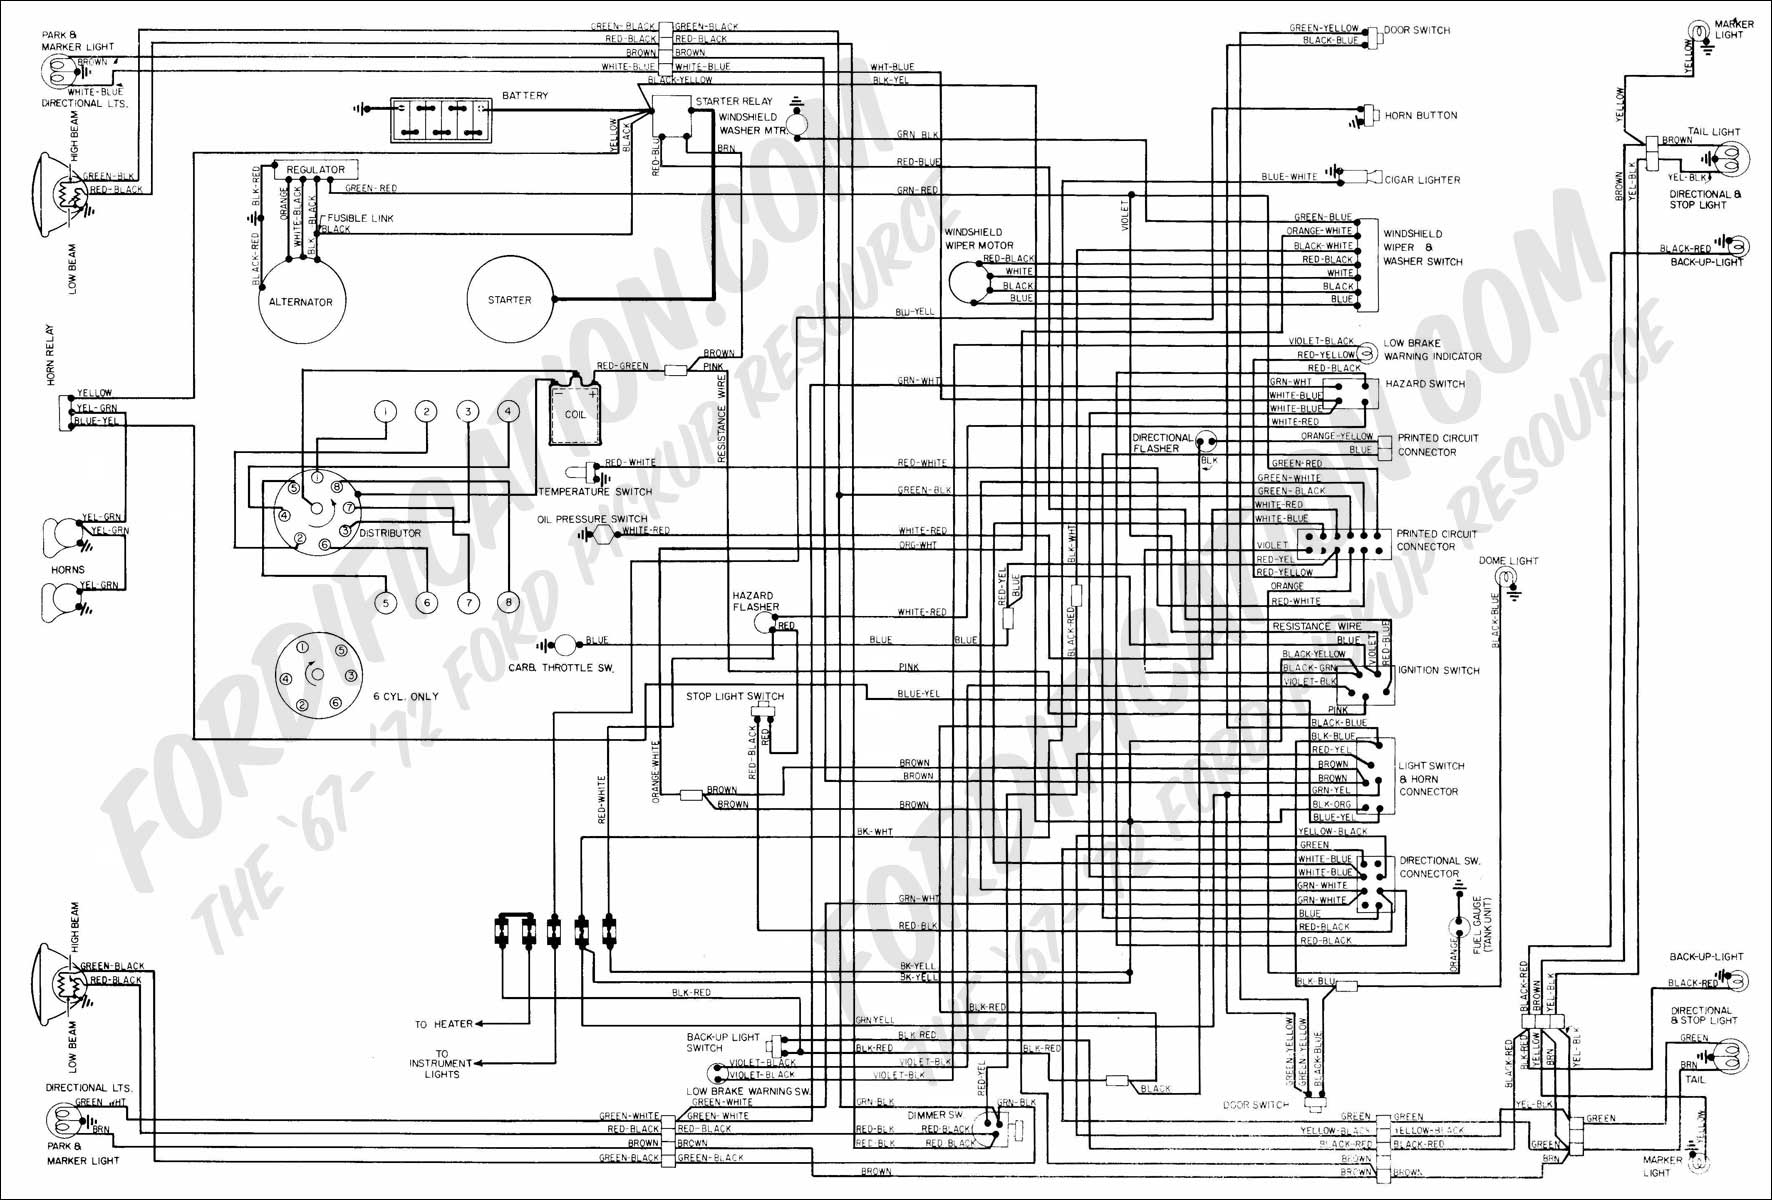 windstar radio wiring diagram with Schematics H on 93 Ford F700 Wiring Diagram besides Schematics h likewise 07paz Need Fuse Diagram 1996 Ford E250 in addition T2215465 Need fuse box diagram 1992 ford ranger also FORD Car Radio Wiring Connector.